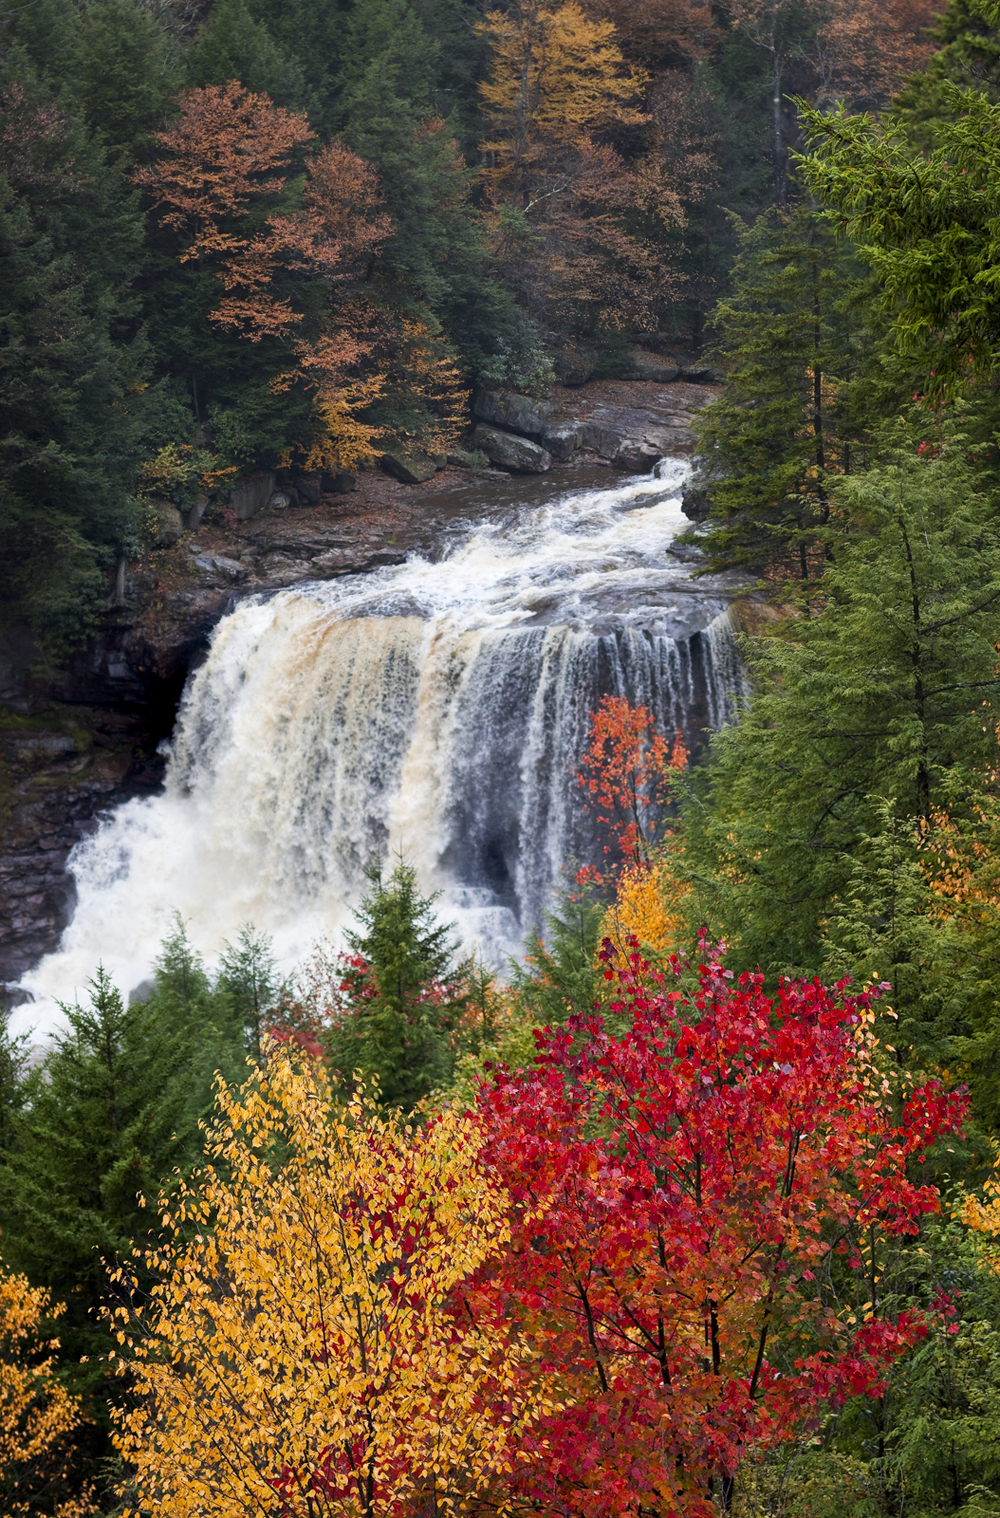 "Mary Ann Honcharik.  ""Blackwater Falls, Fall 2009,"" giclée photographic print, 14.5"" x 21.5"", matted & framed w/ conservation glass as 20"" x 26"".  More work by this artist at Tamarack (Beckley WV) and Buxton & Landstreet Gallery and online at  www.maryannhoncharik-photography.com    FMV   $265      I    GUAR PUR   $331      I    MIN BID$106      I    BID INC$10"